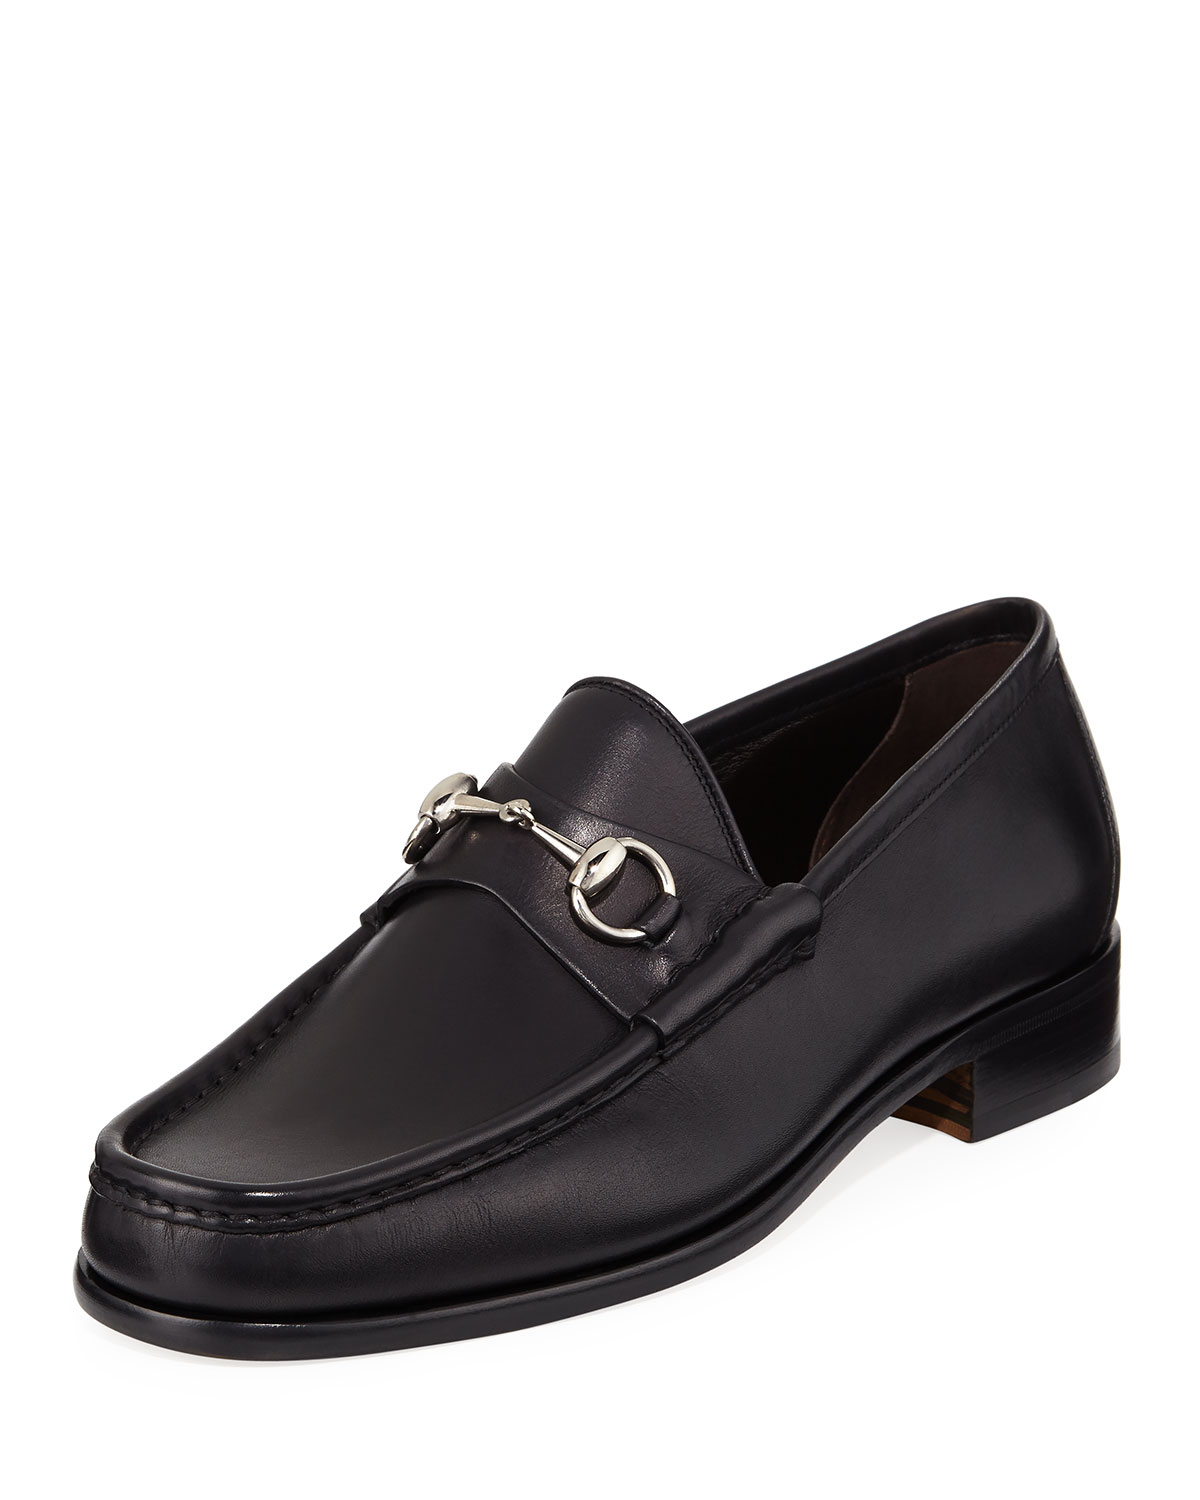 d6197c53a42e Gucci Classic Leather Horsebit Loafer